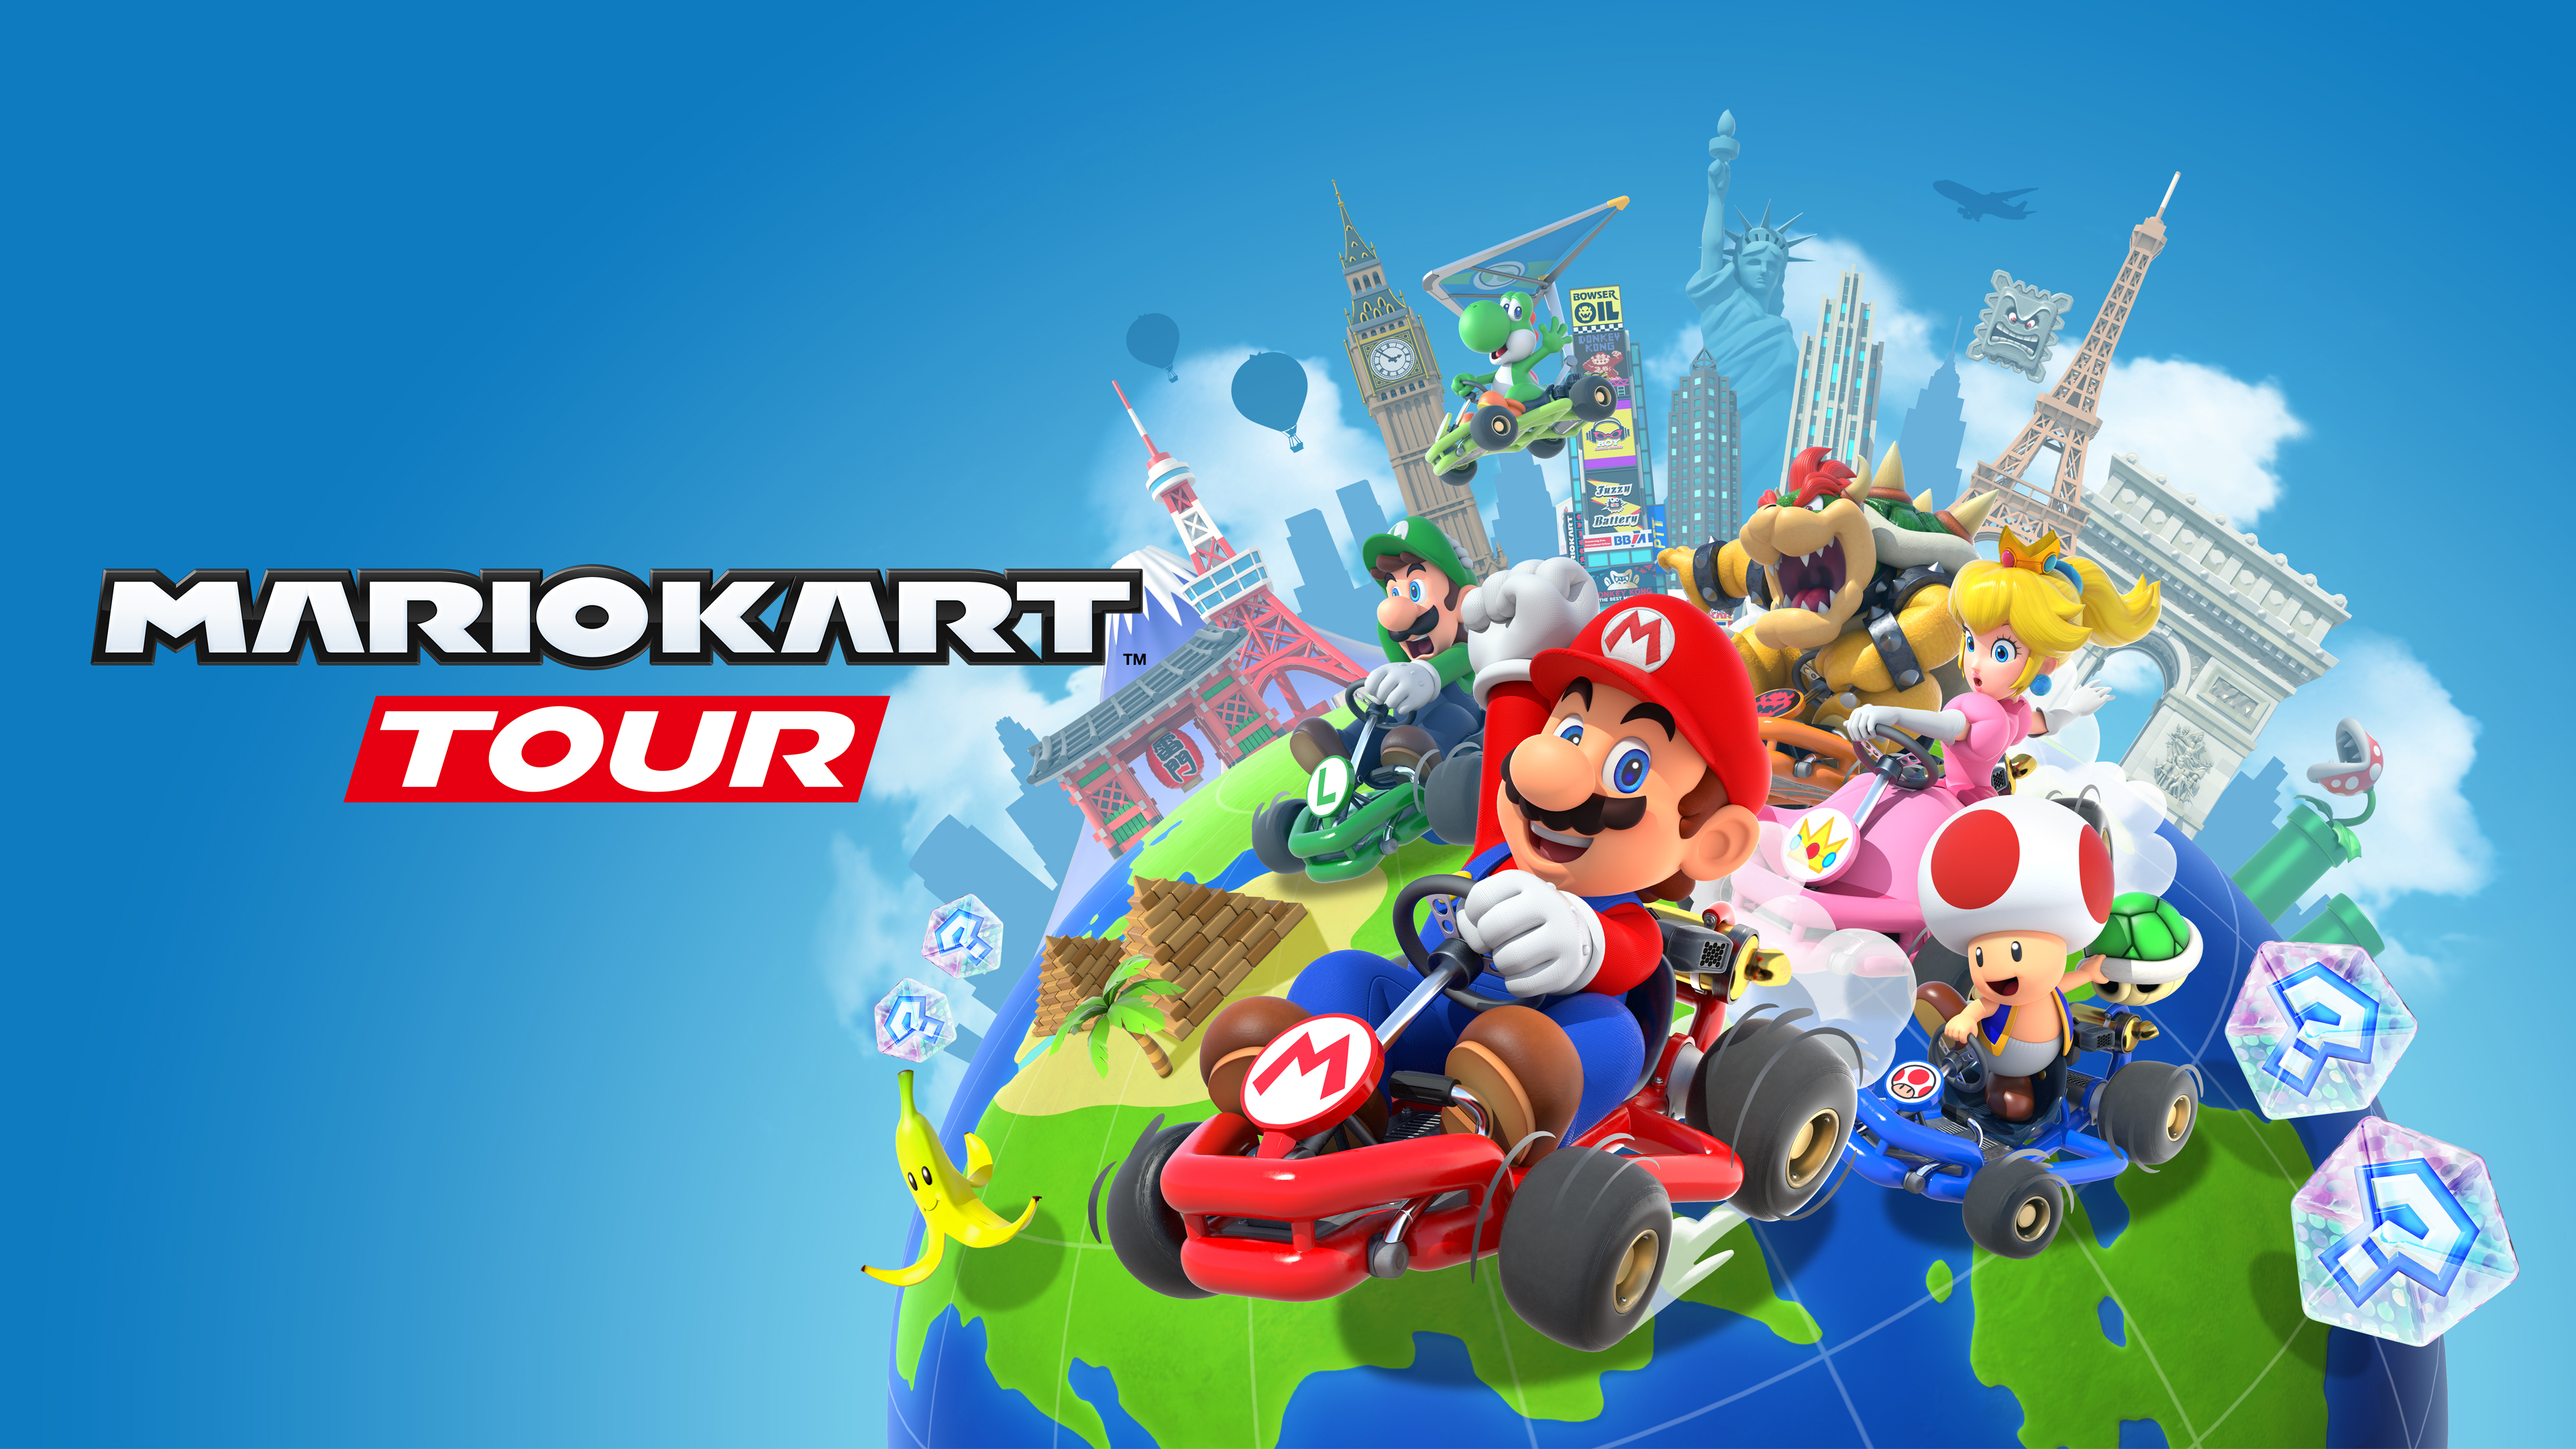 Mario Kart Tour Art Wallpaper Cat With Monocle